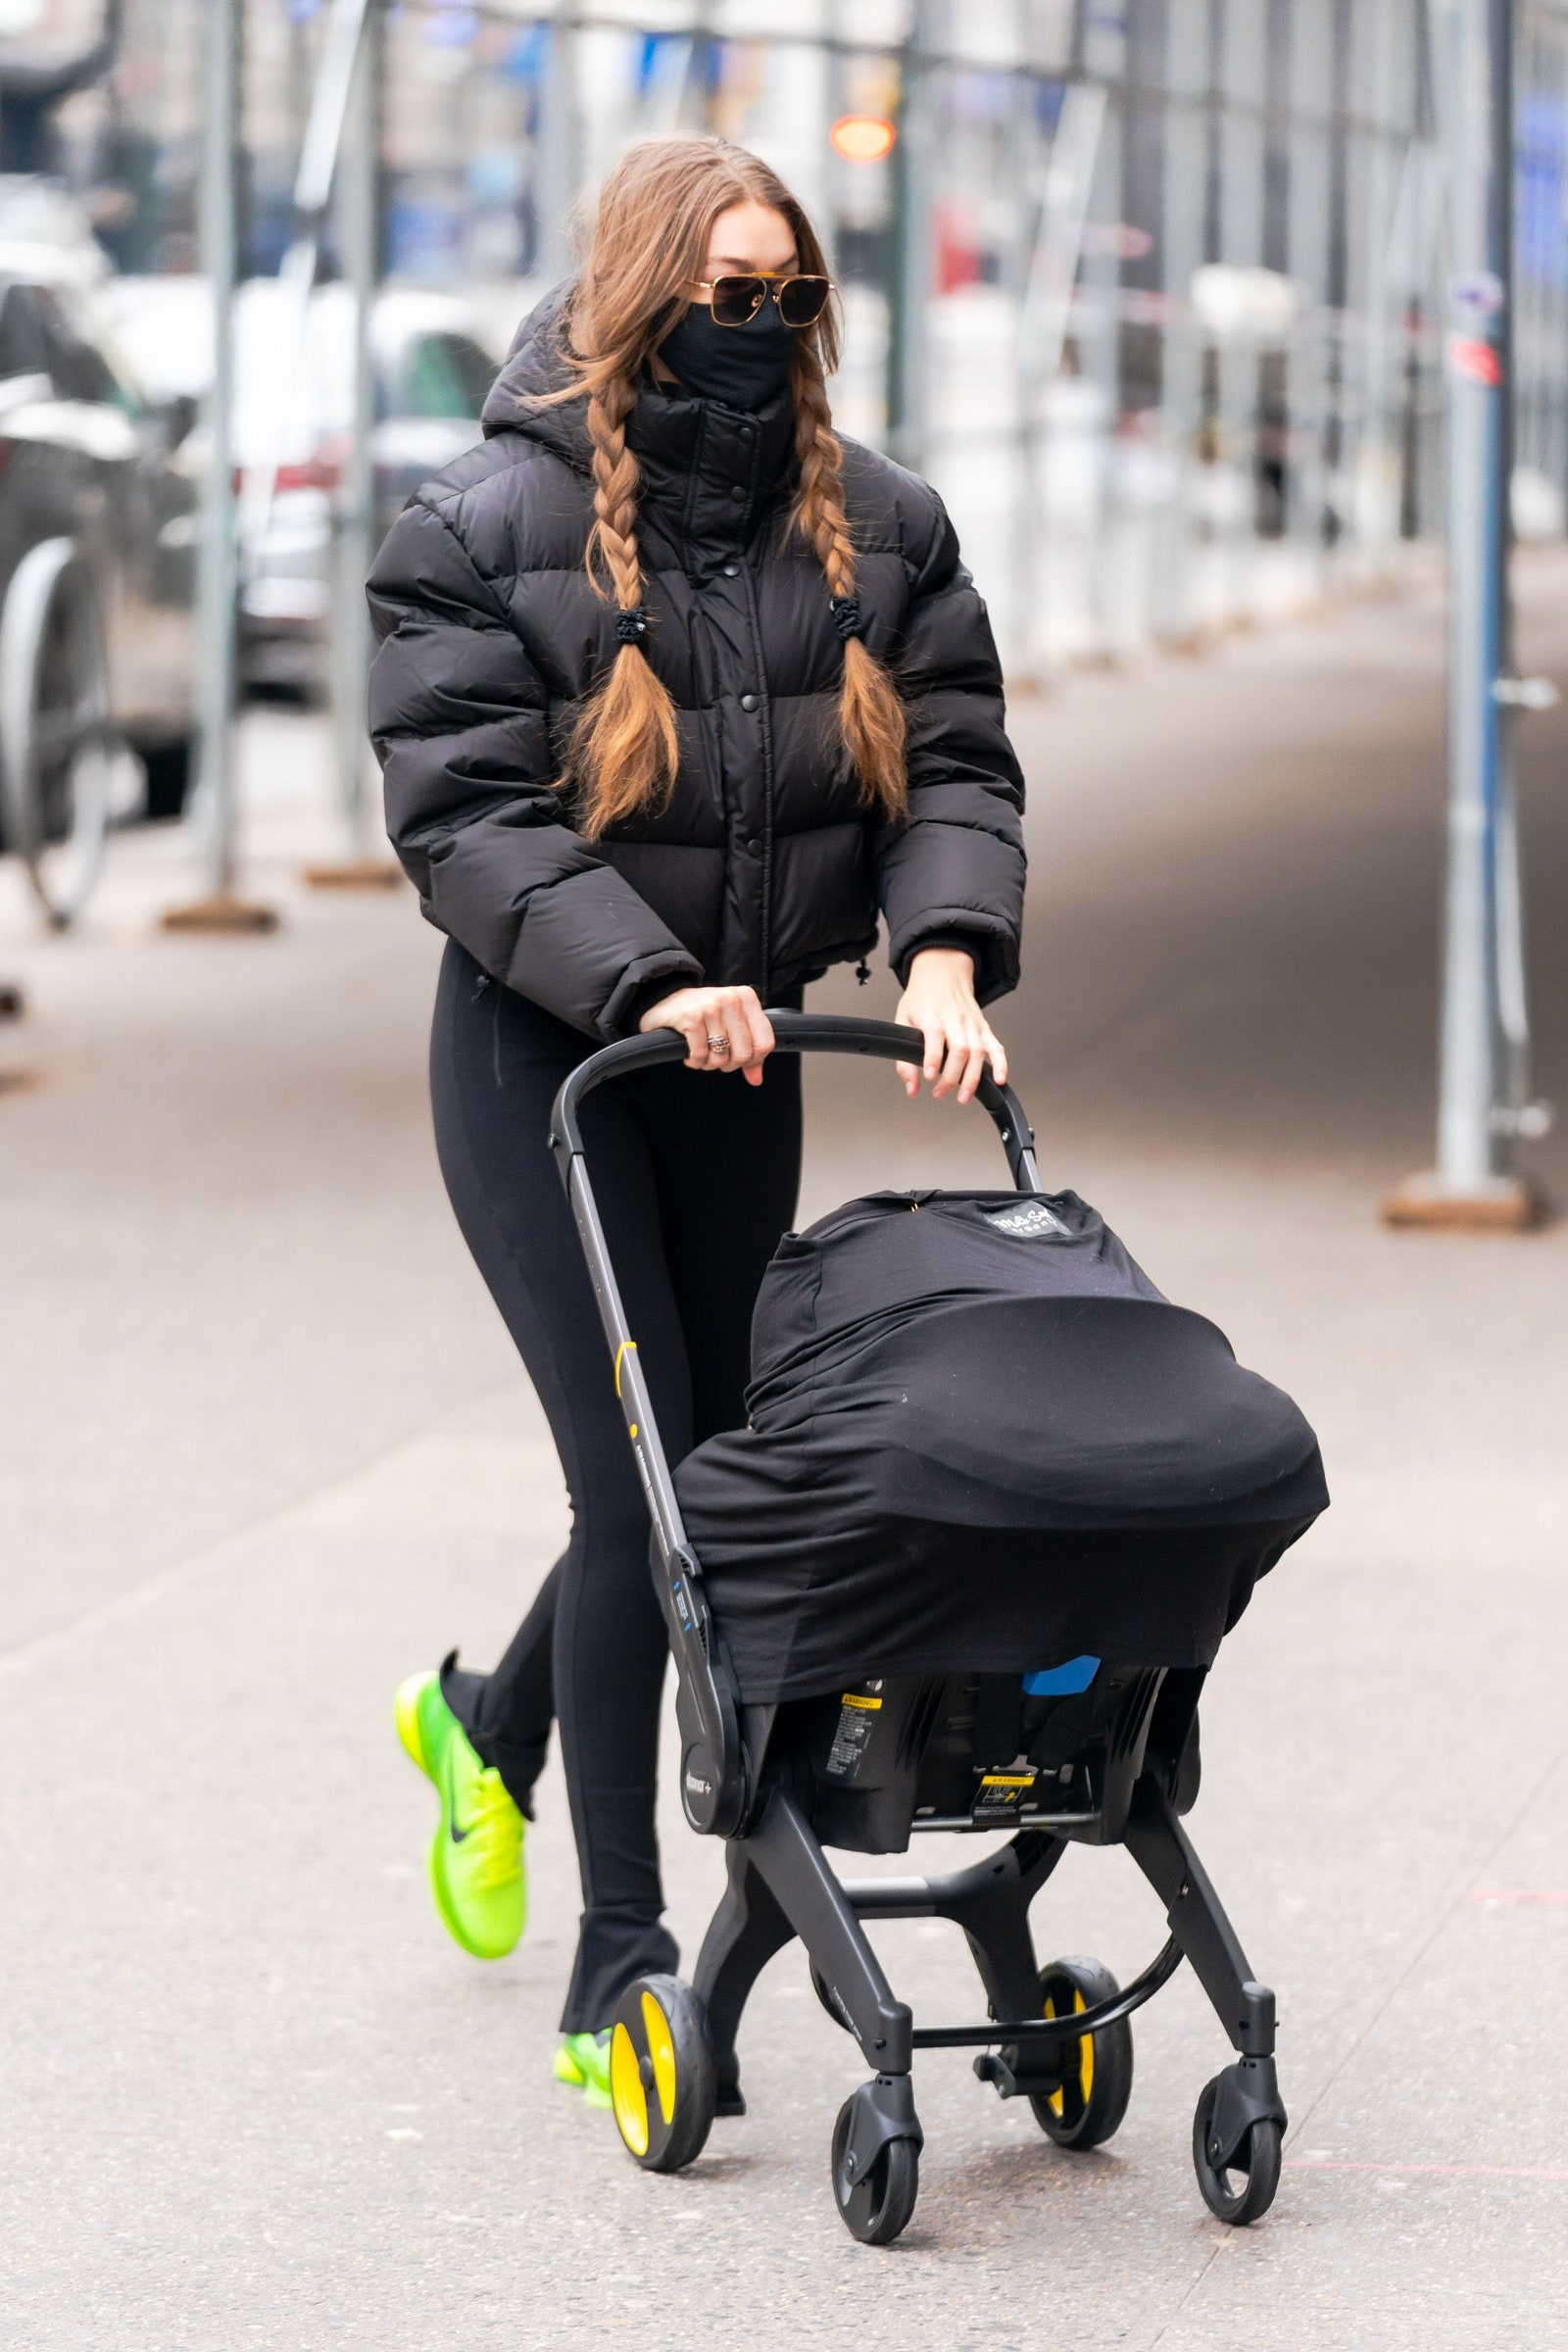 NEW YORK NEW YORK JANUARY 11 Gigi Hadid is seen in Chelsea on January 11 2021 in New York City.